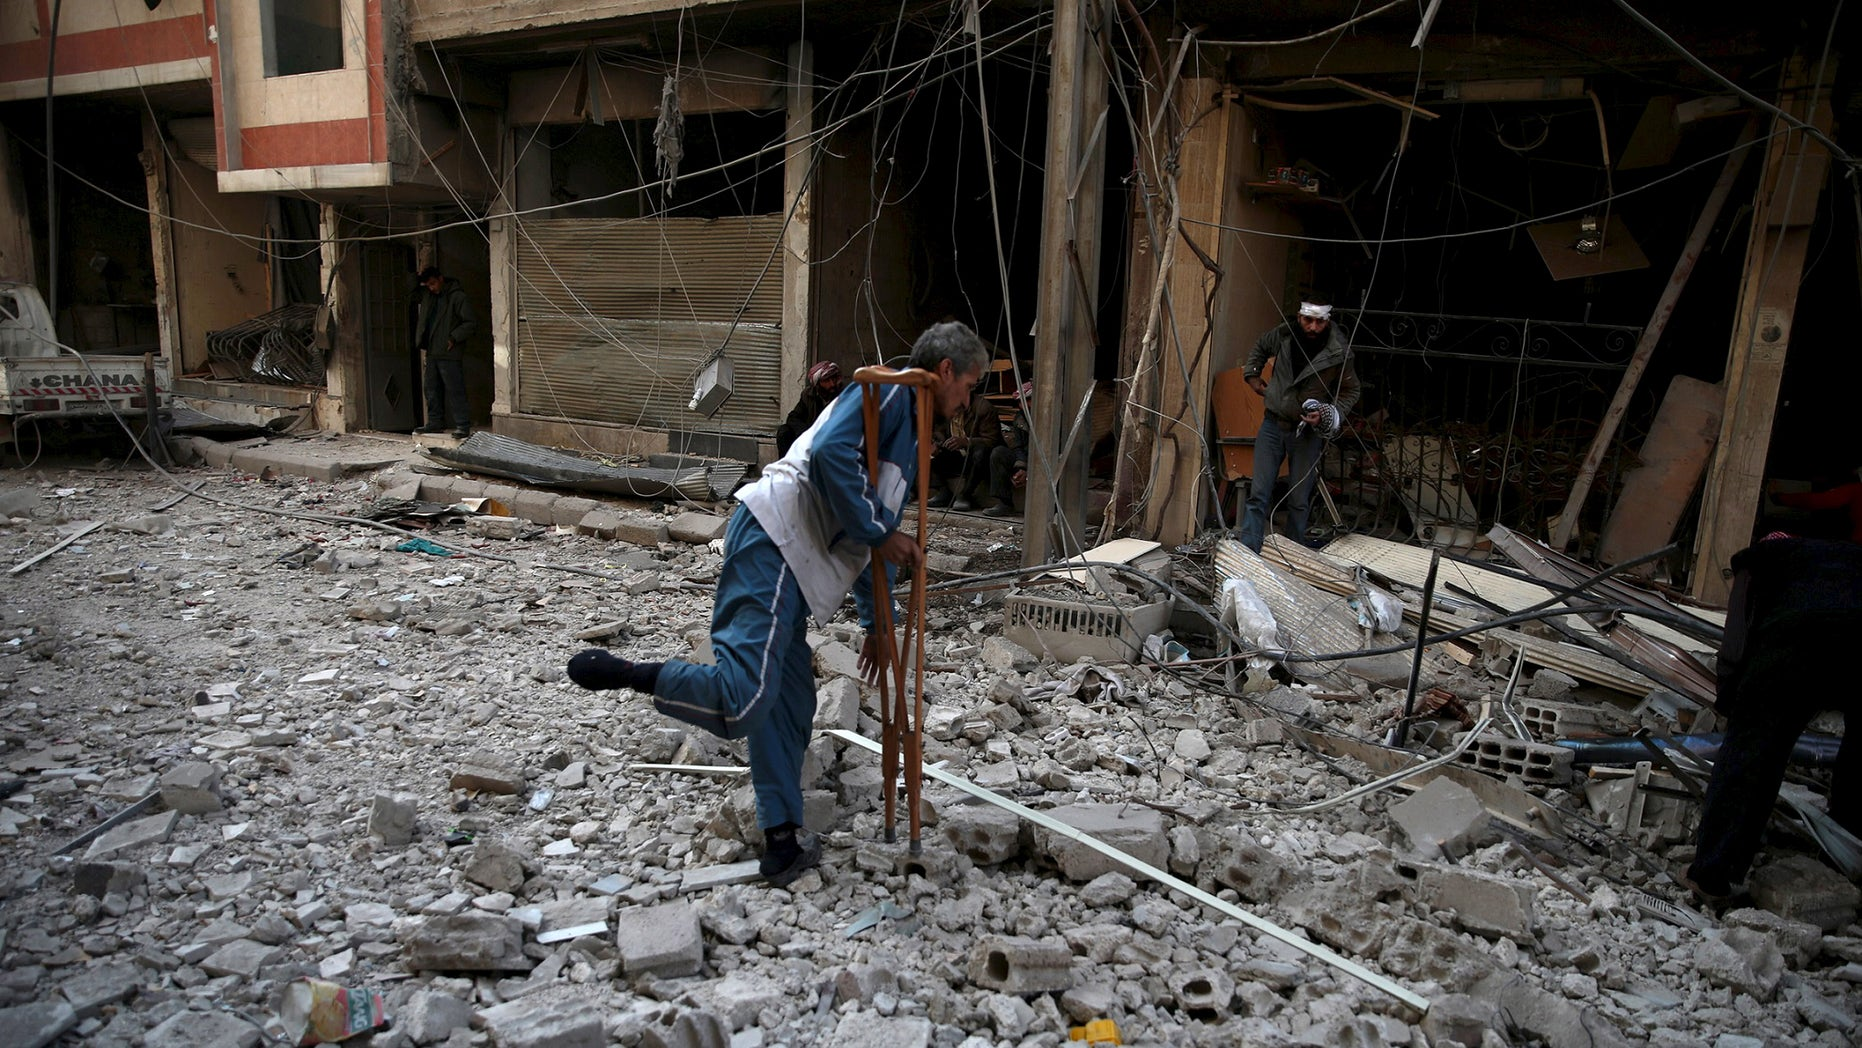 Dec. 13, 2015: Men search for belongings at a site hit by missiles in the Douma neighborhood of Damascus, Syria (REUTERS).